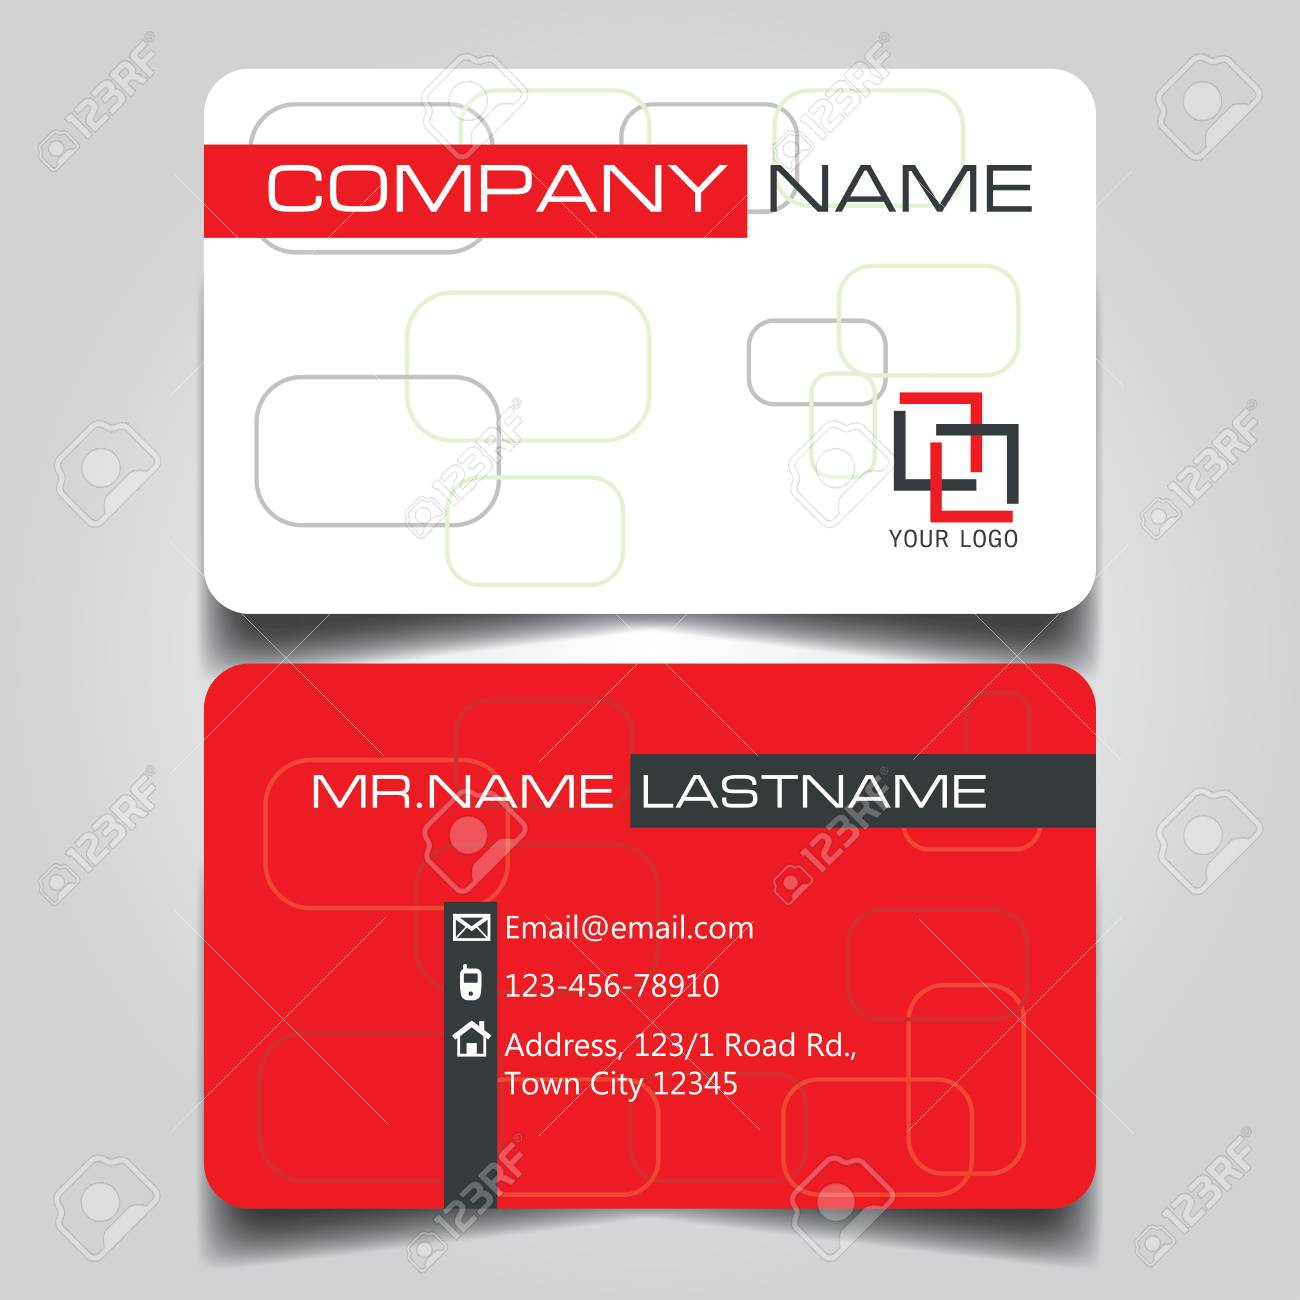 Modern Red White And Black Name Card And Business Card With